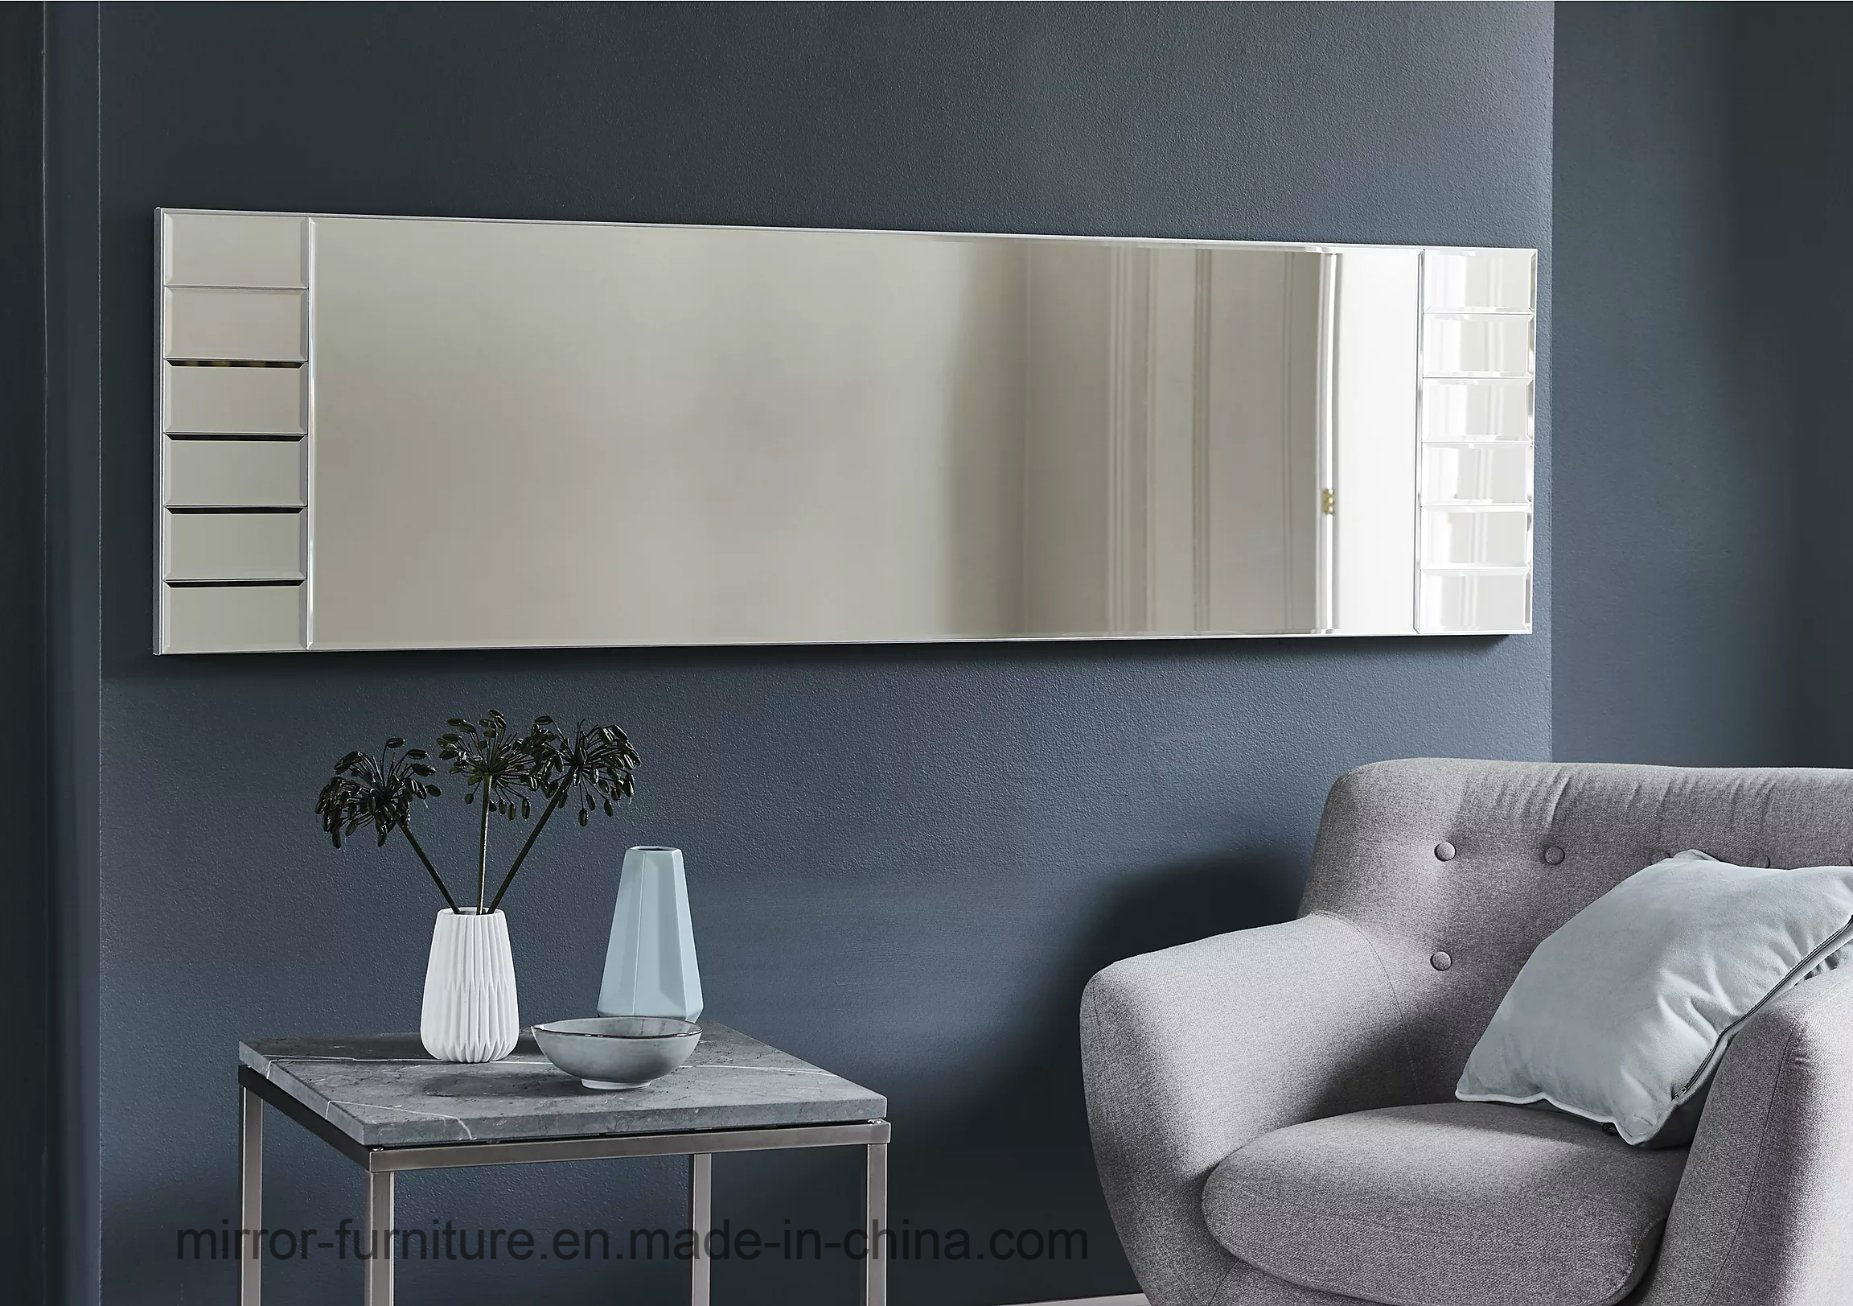 China Unique Oem Living Room Long Rectangle Wall Mirror Floor Mirror China Feature Floor Mirror Big Size Mirror